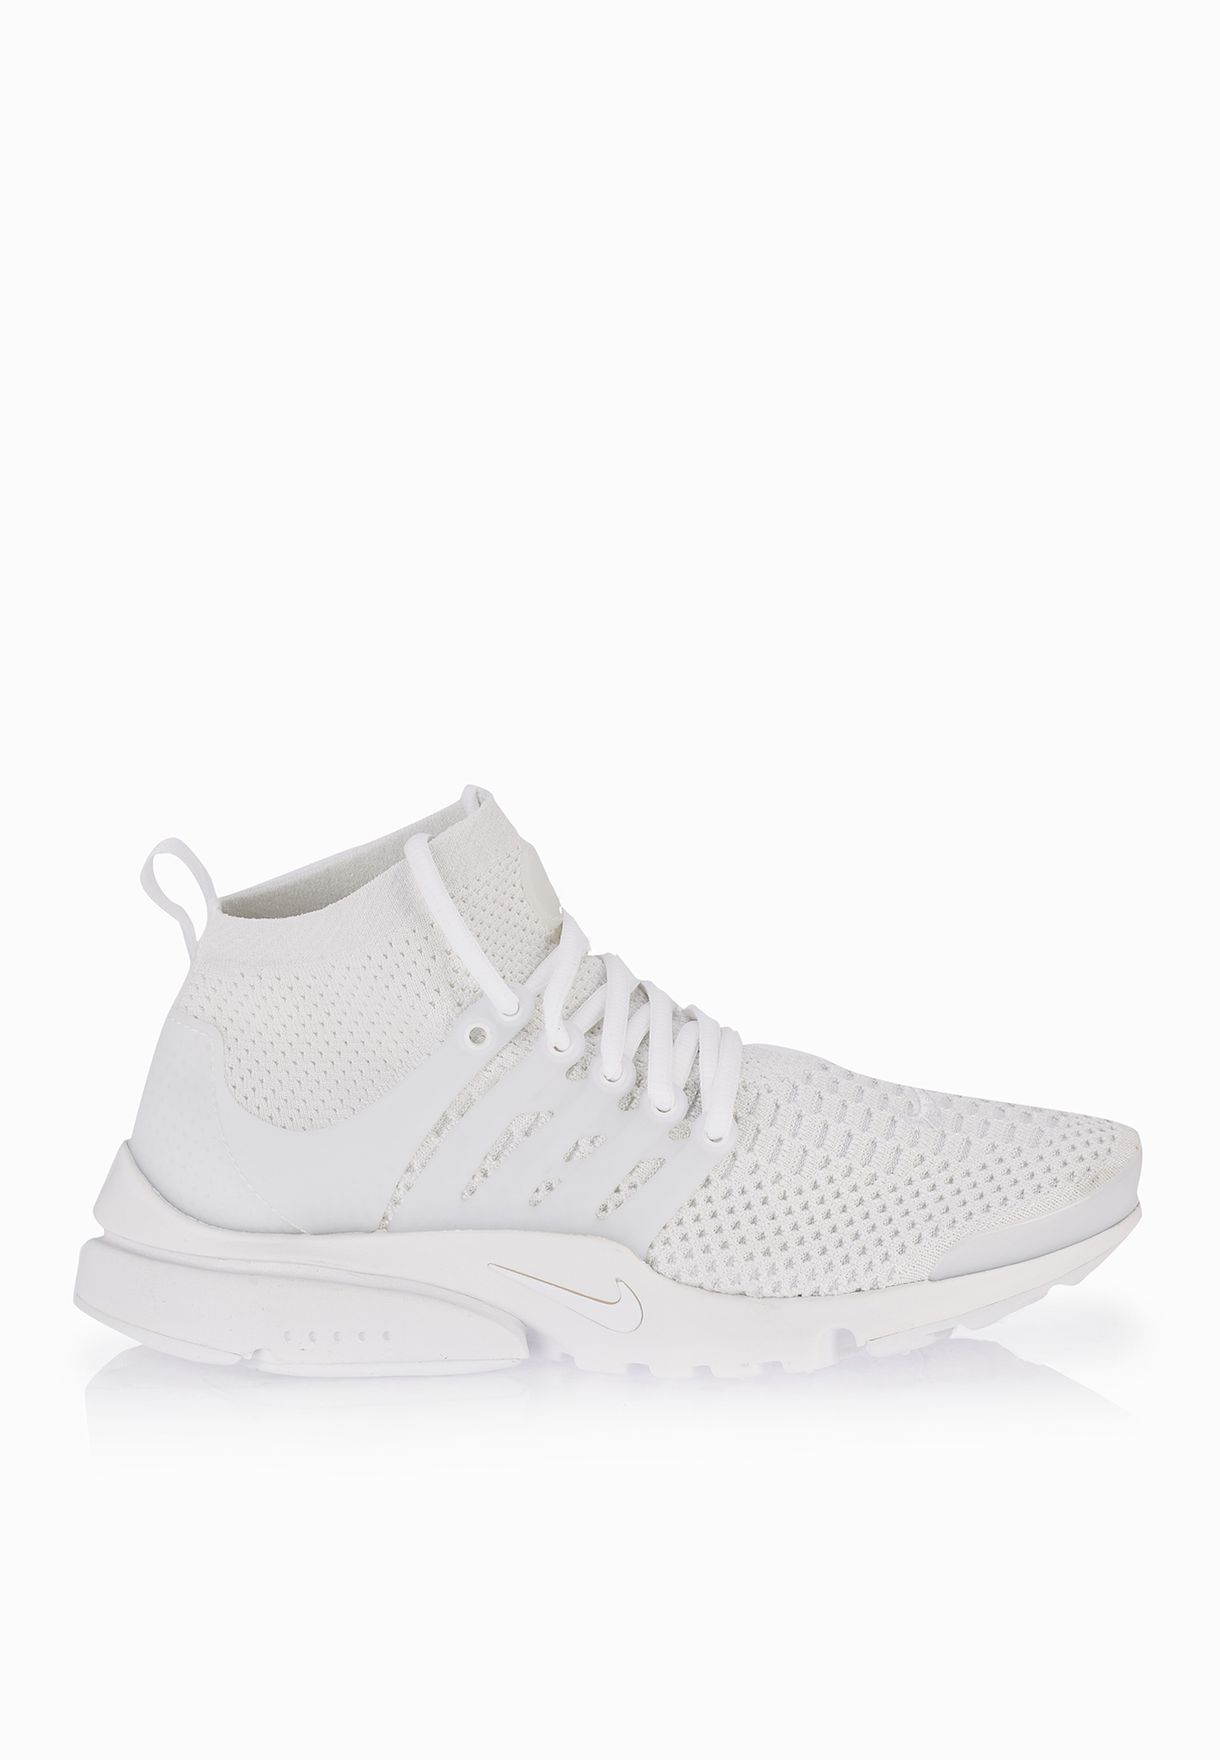 new product 77421 c1128 Air Presto Flyknit Ultra